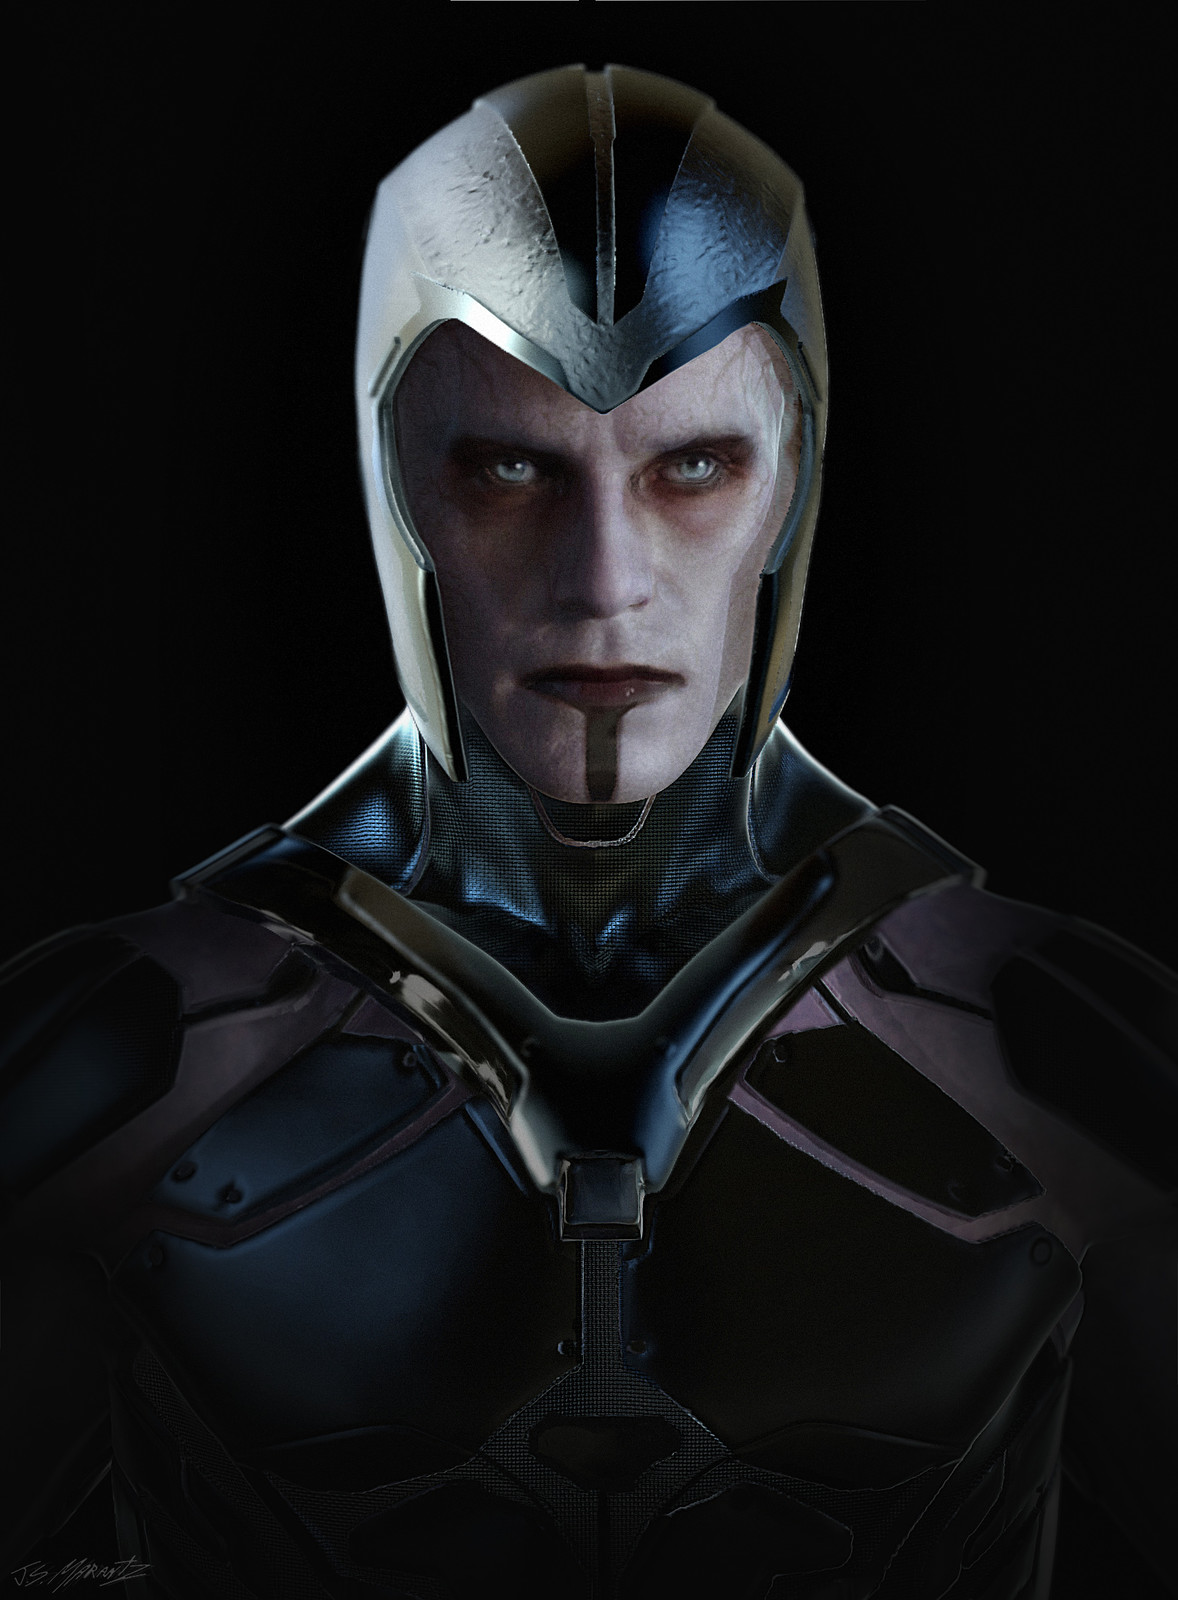 X Men Apocalypse: Early Magneto Concepts